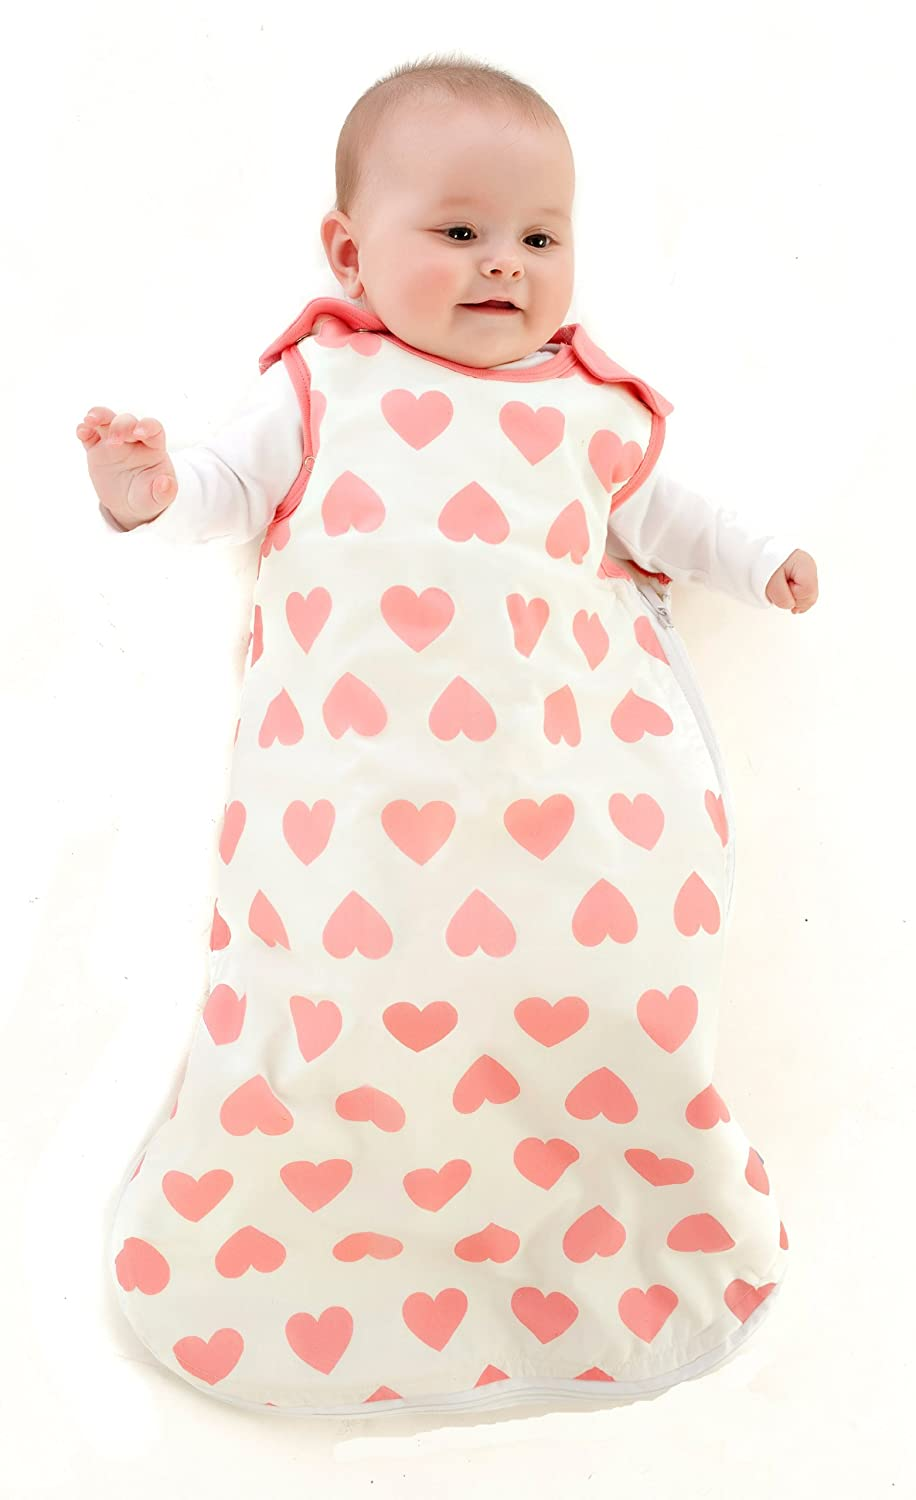 Mama Designs Babasac Multi Tog Baby Sleeping Bag In Off White With Pink HeartDesign For 6 To 18 Months 10 And 25 Included Amazoncouk